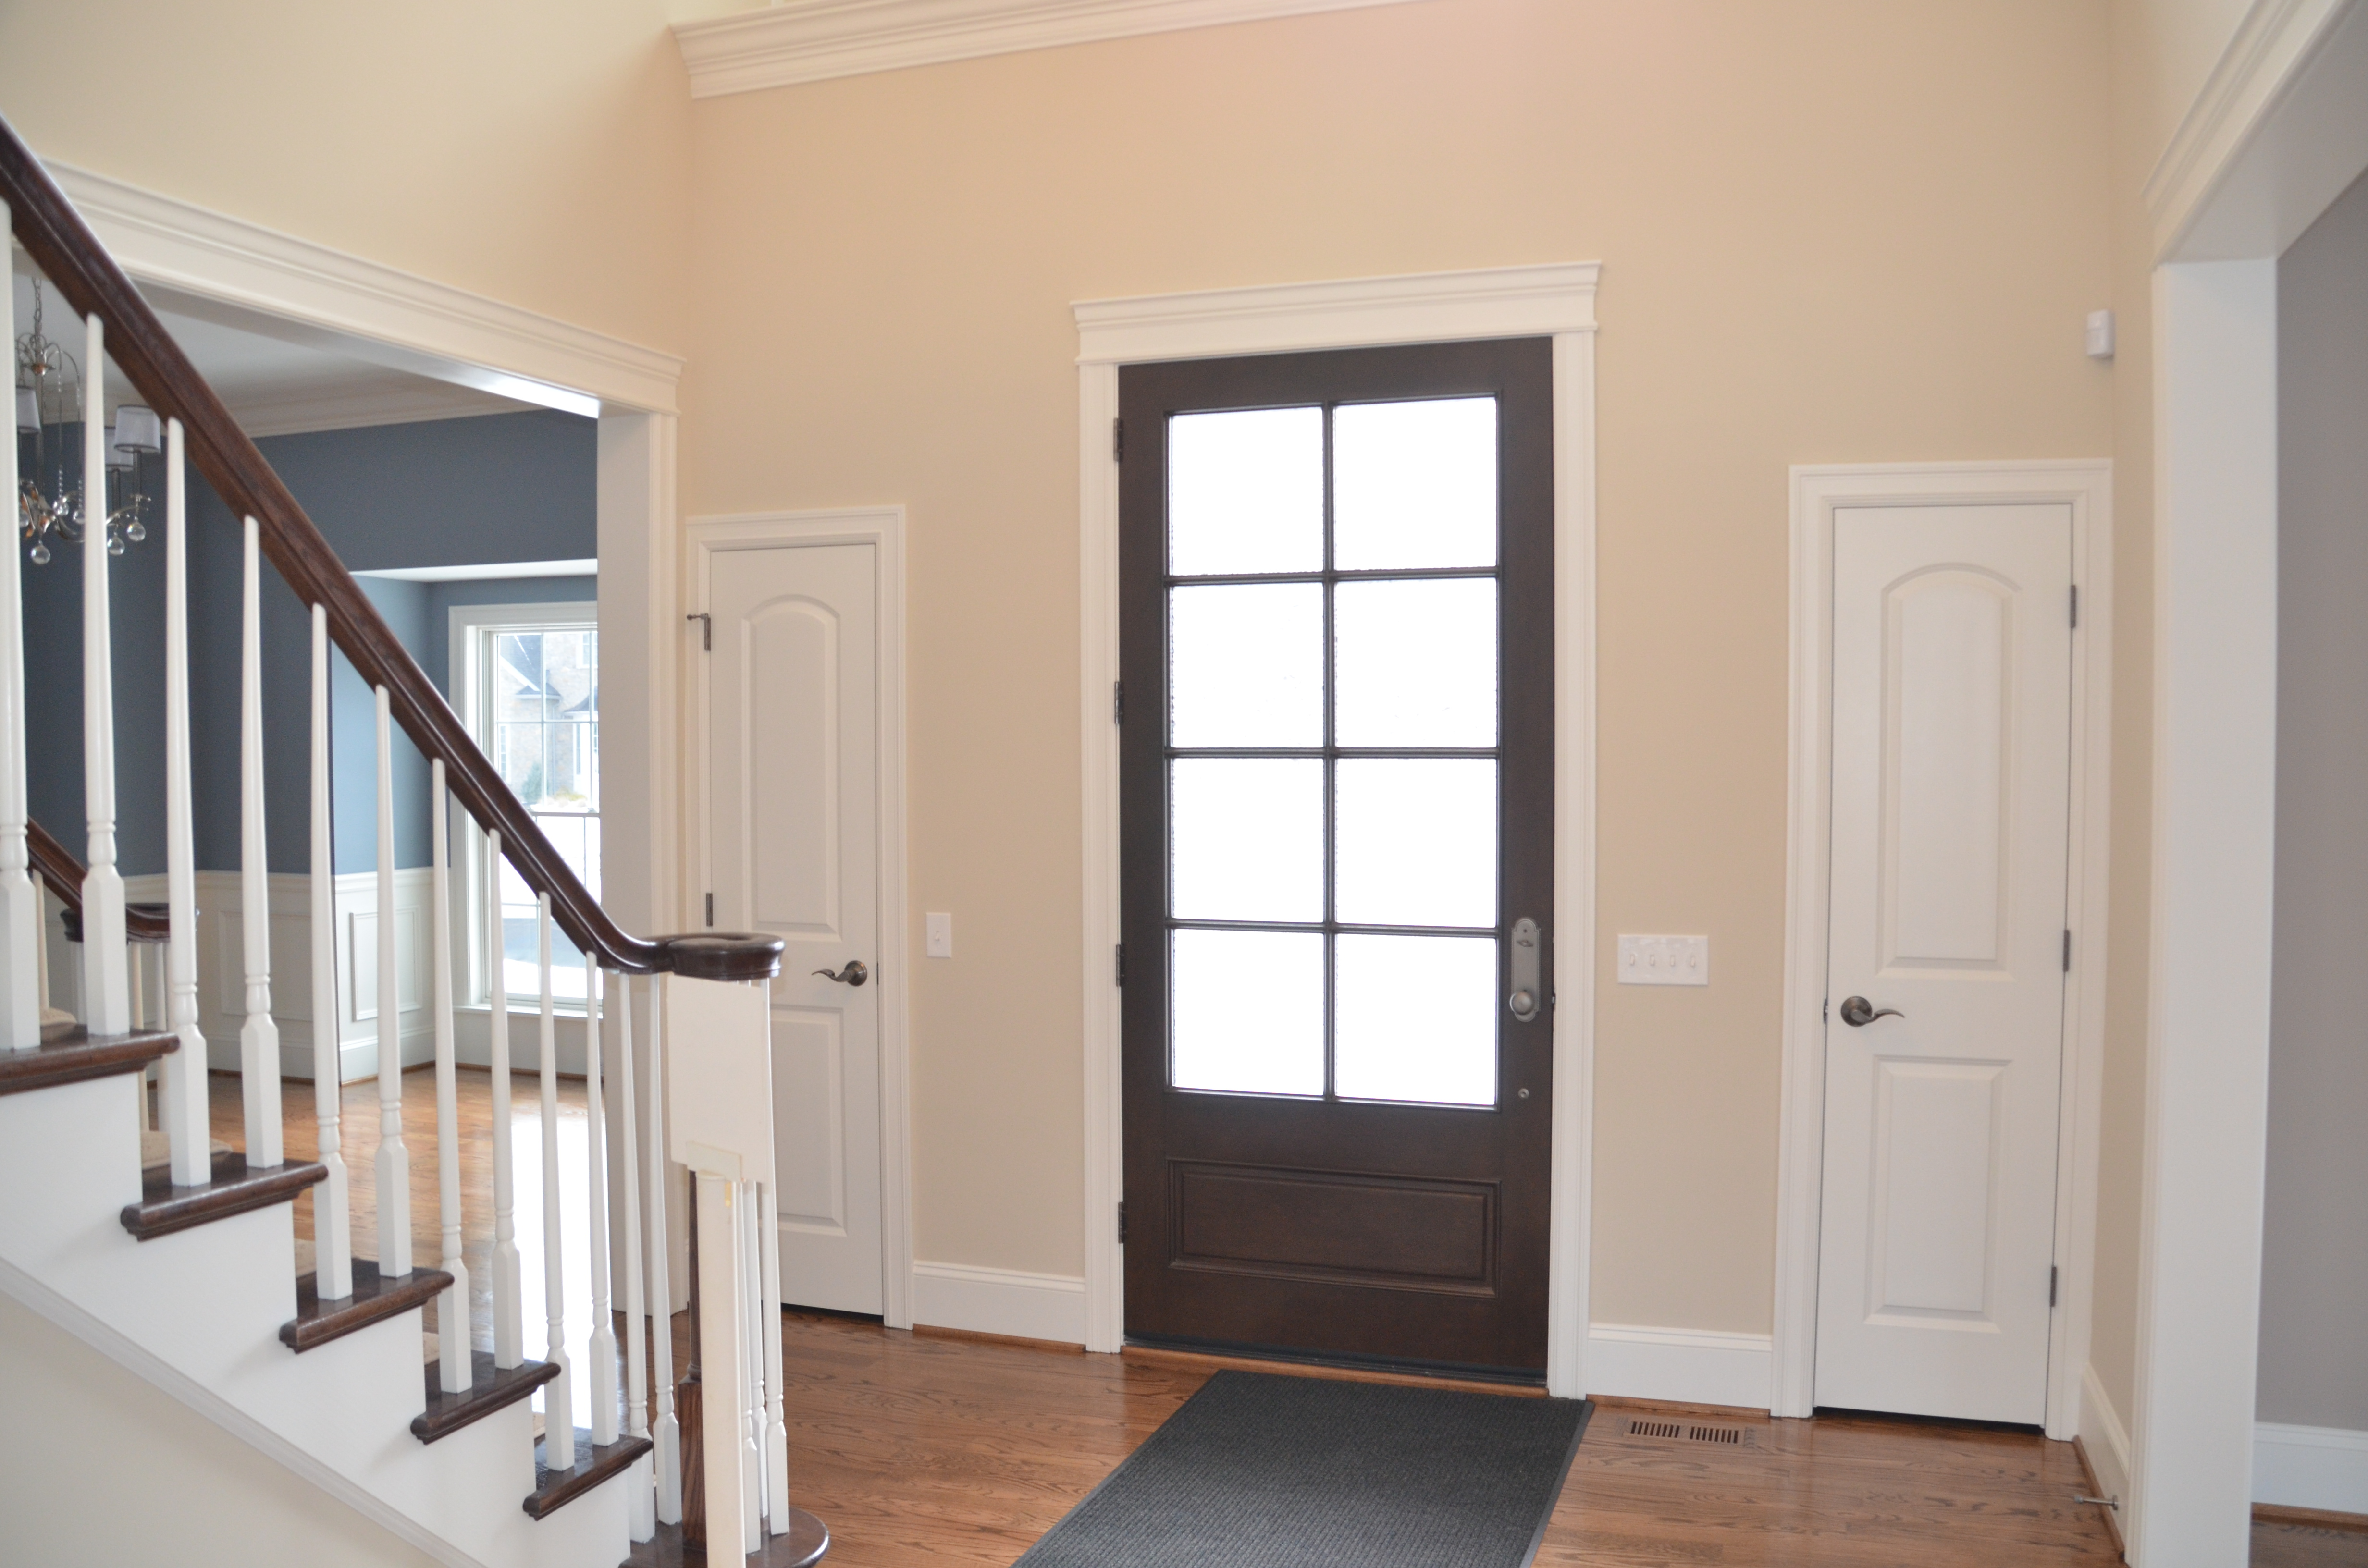 Pittsford Luxury Home - Entry Way